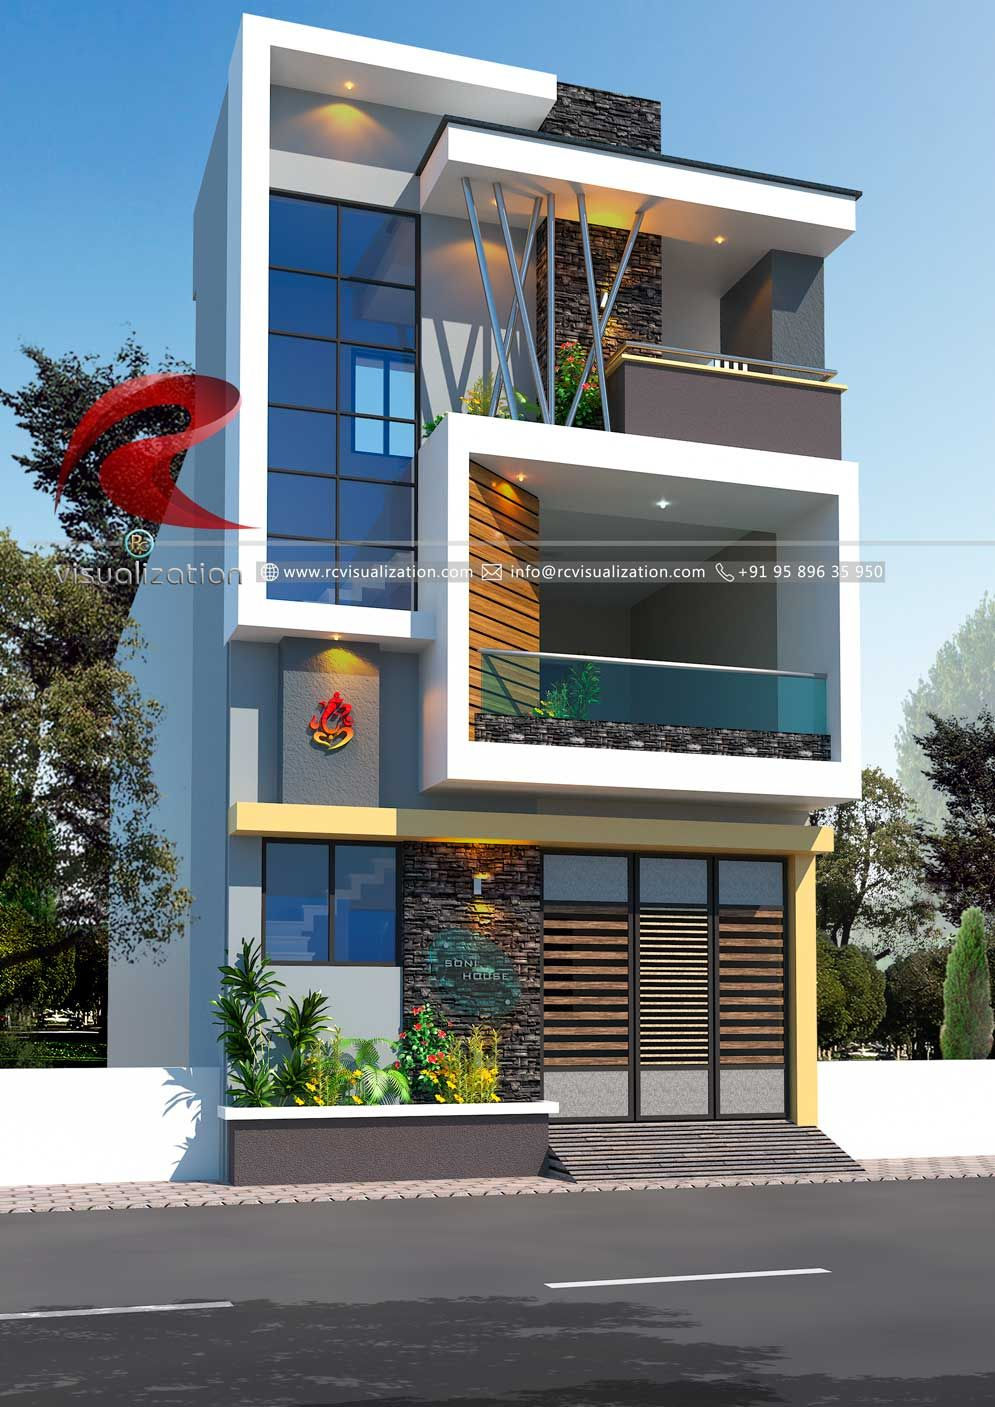 3d Narrow House Designs Gallery Rc Visualization Structural Plan And Elevation Designin Narrow House Designs Small House Elevation Design Duplex House Design